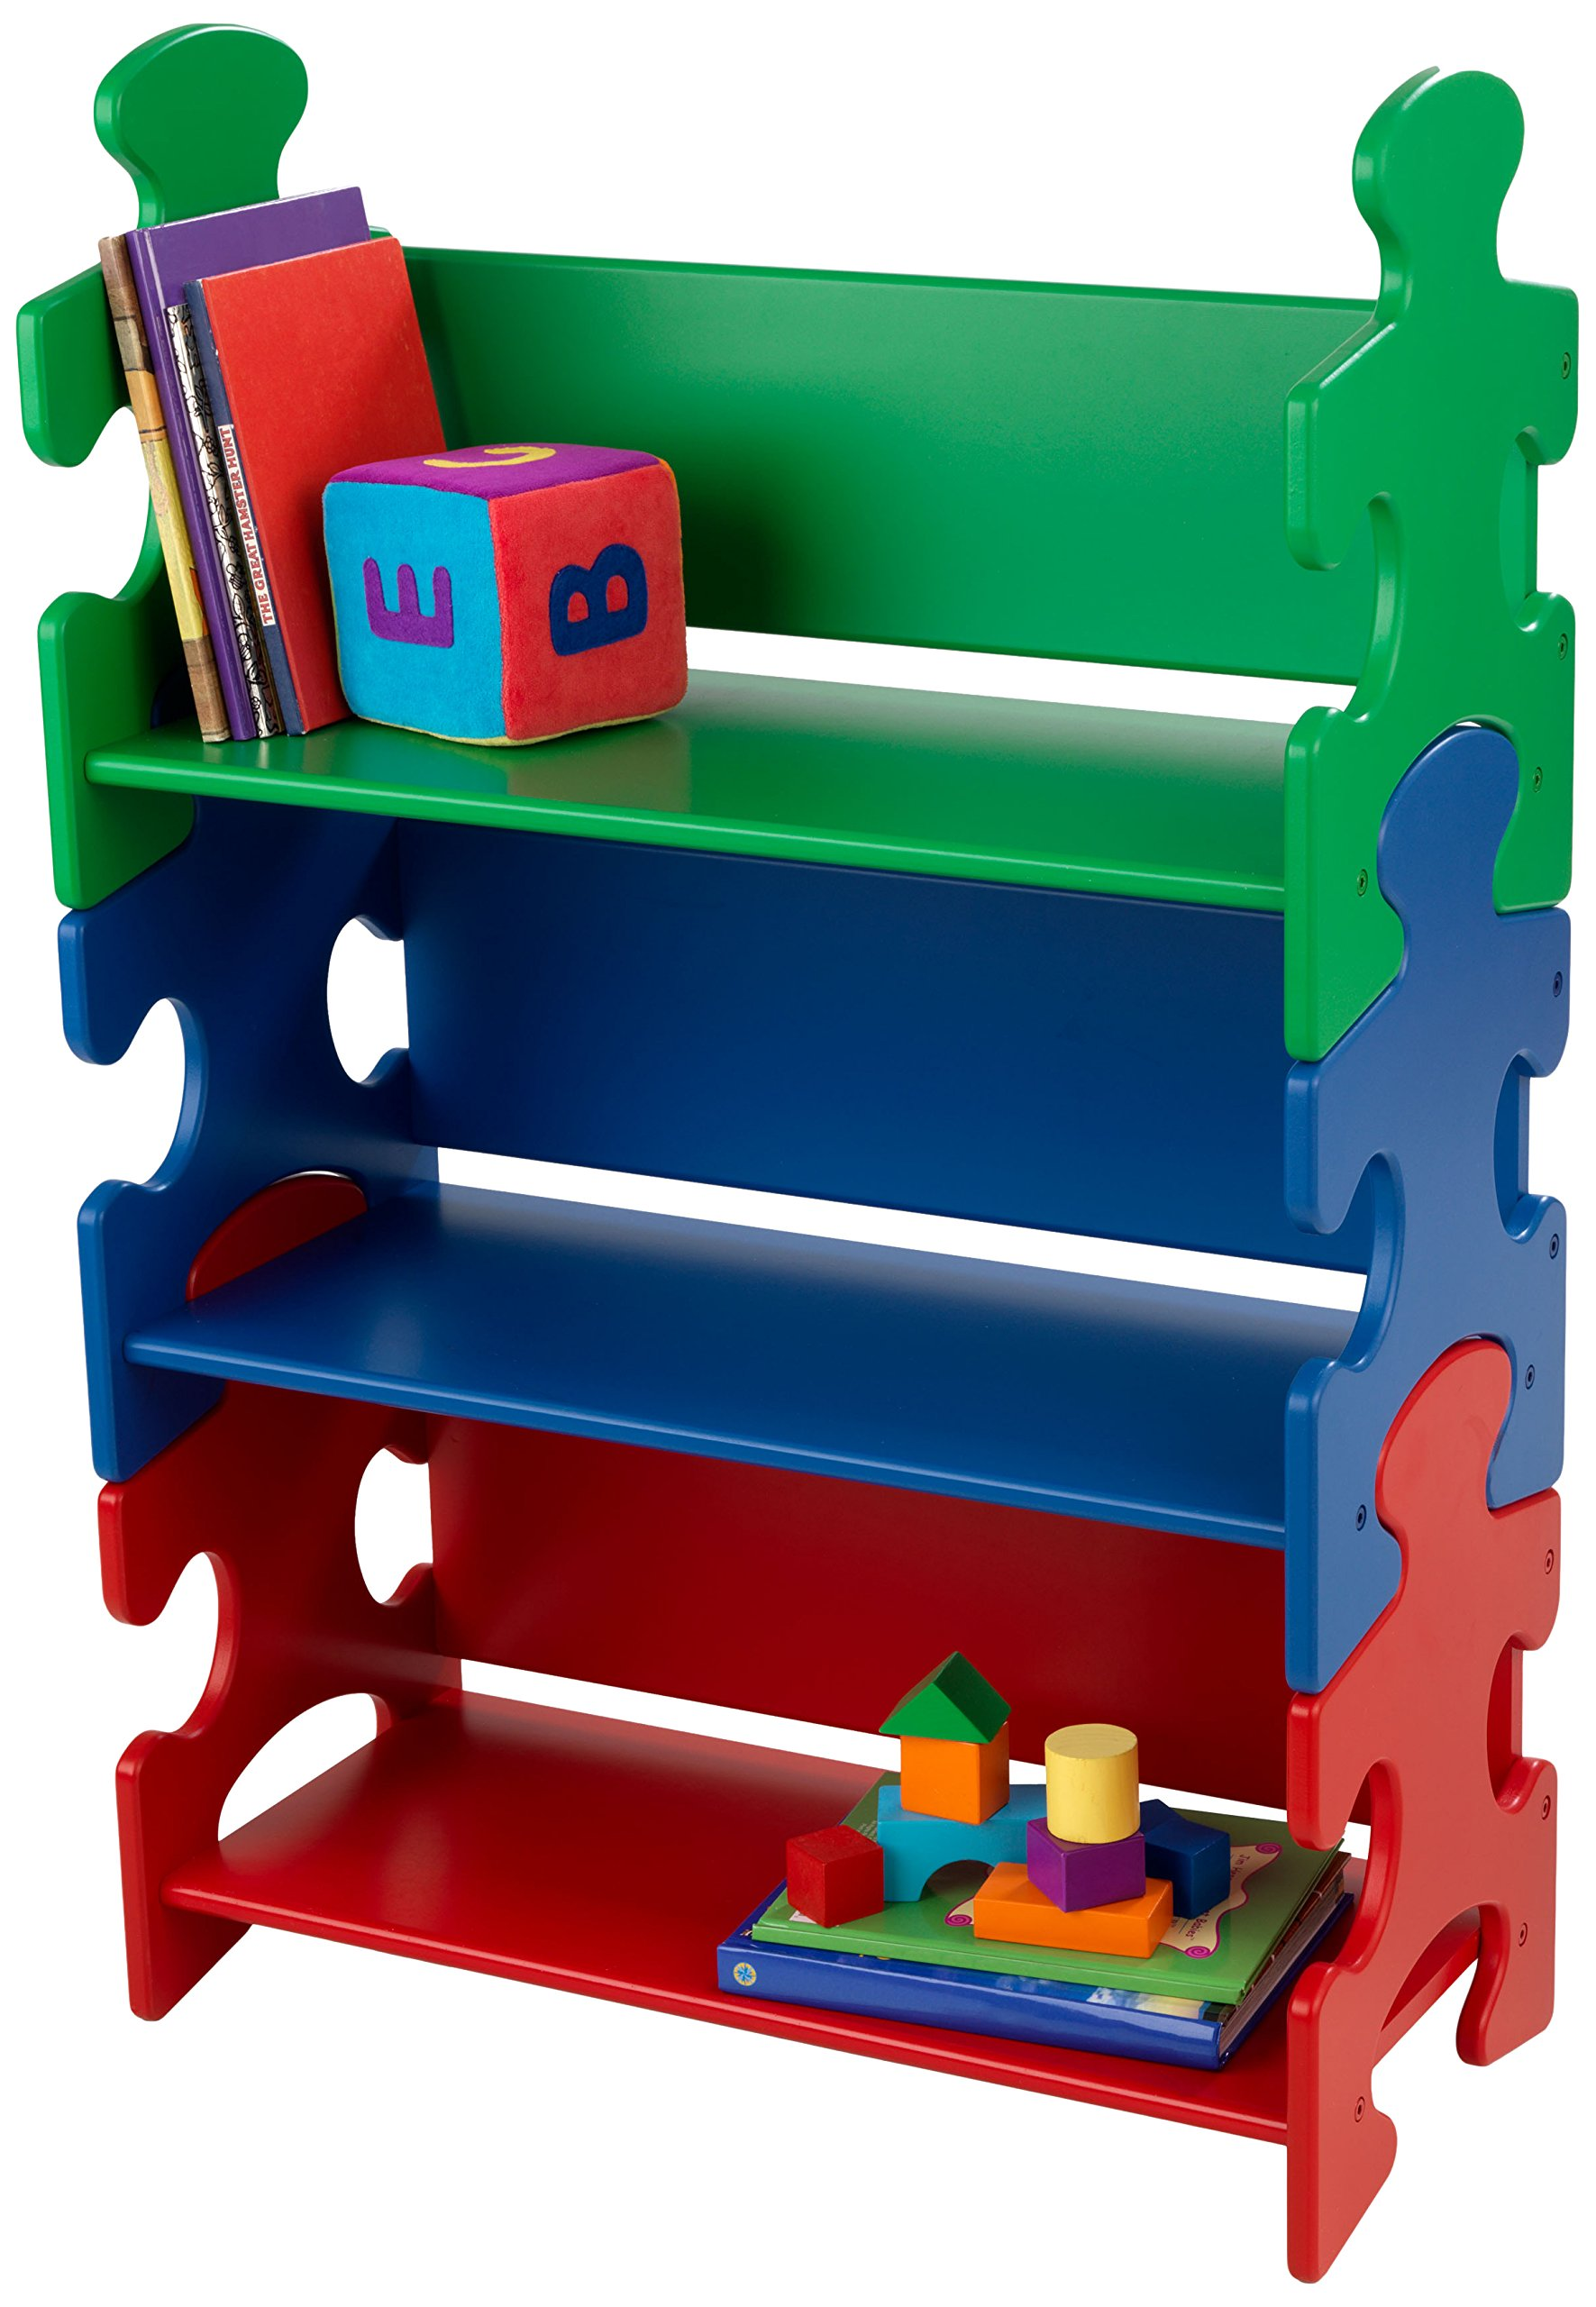 KidKraft Wooden Puzzle Piece Bookcase with Three Shelves - Primary by KidKraft